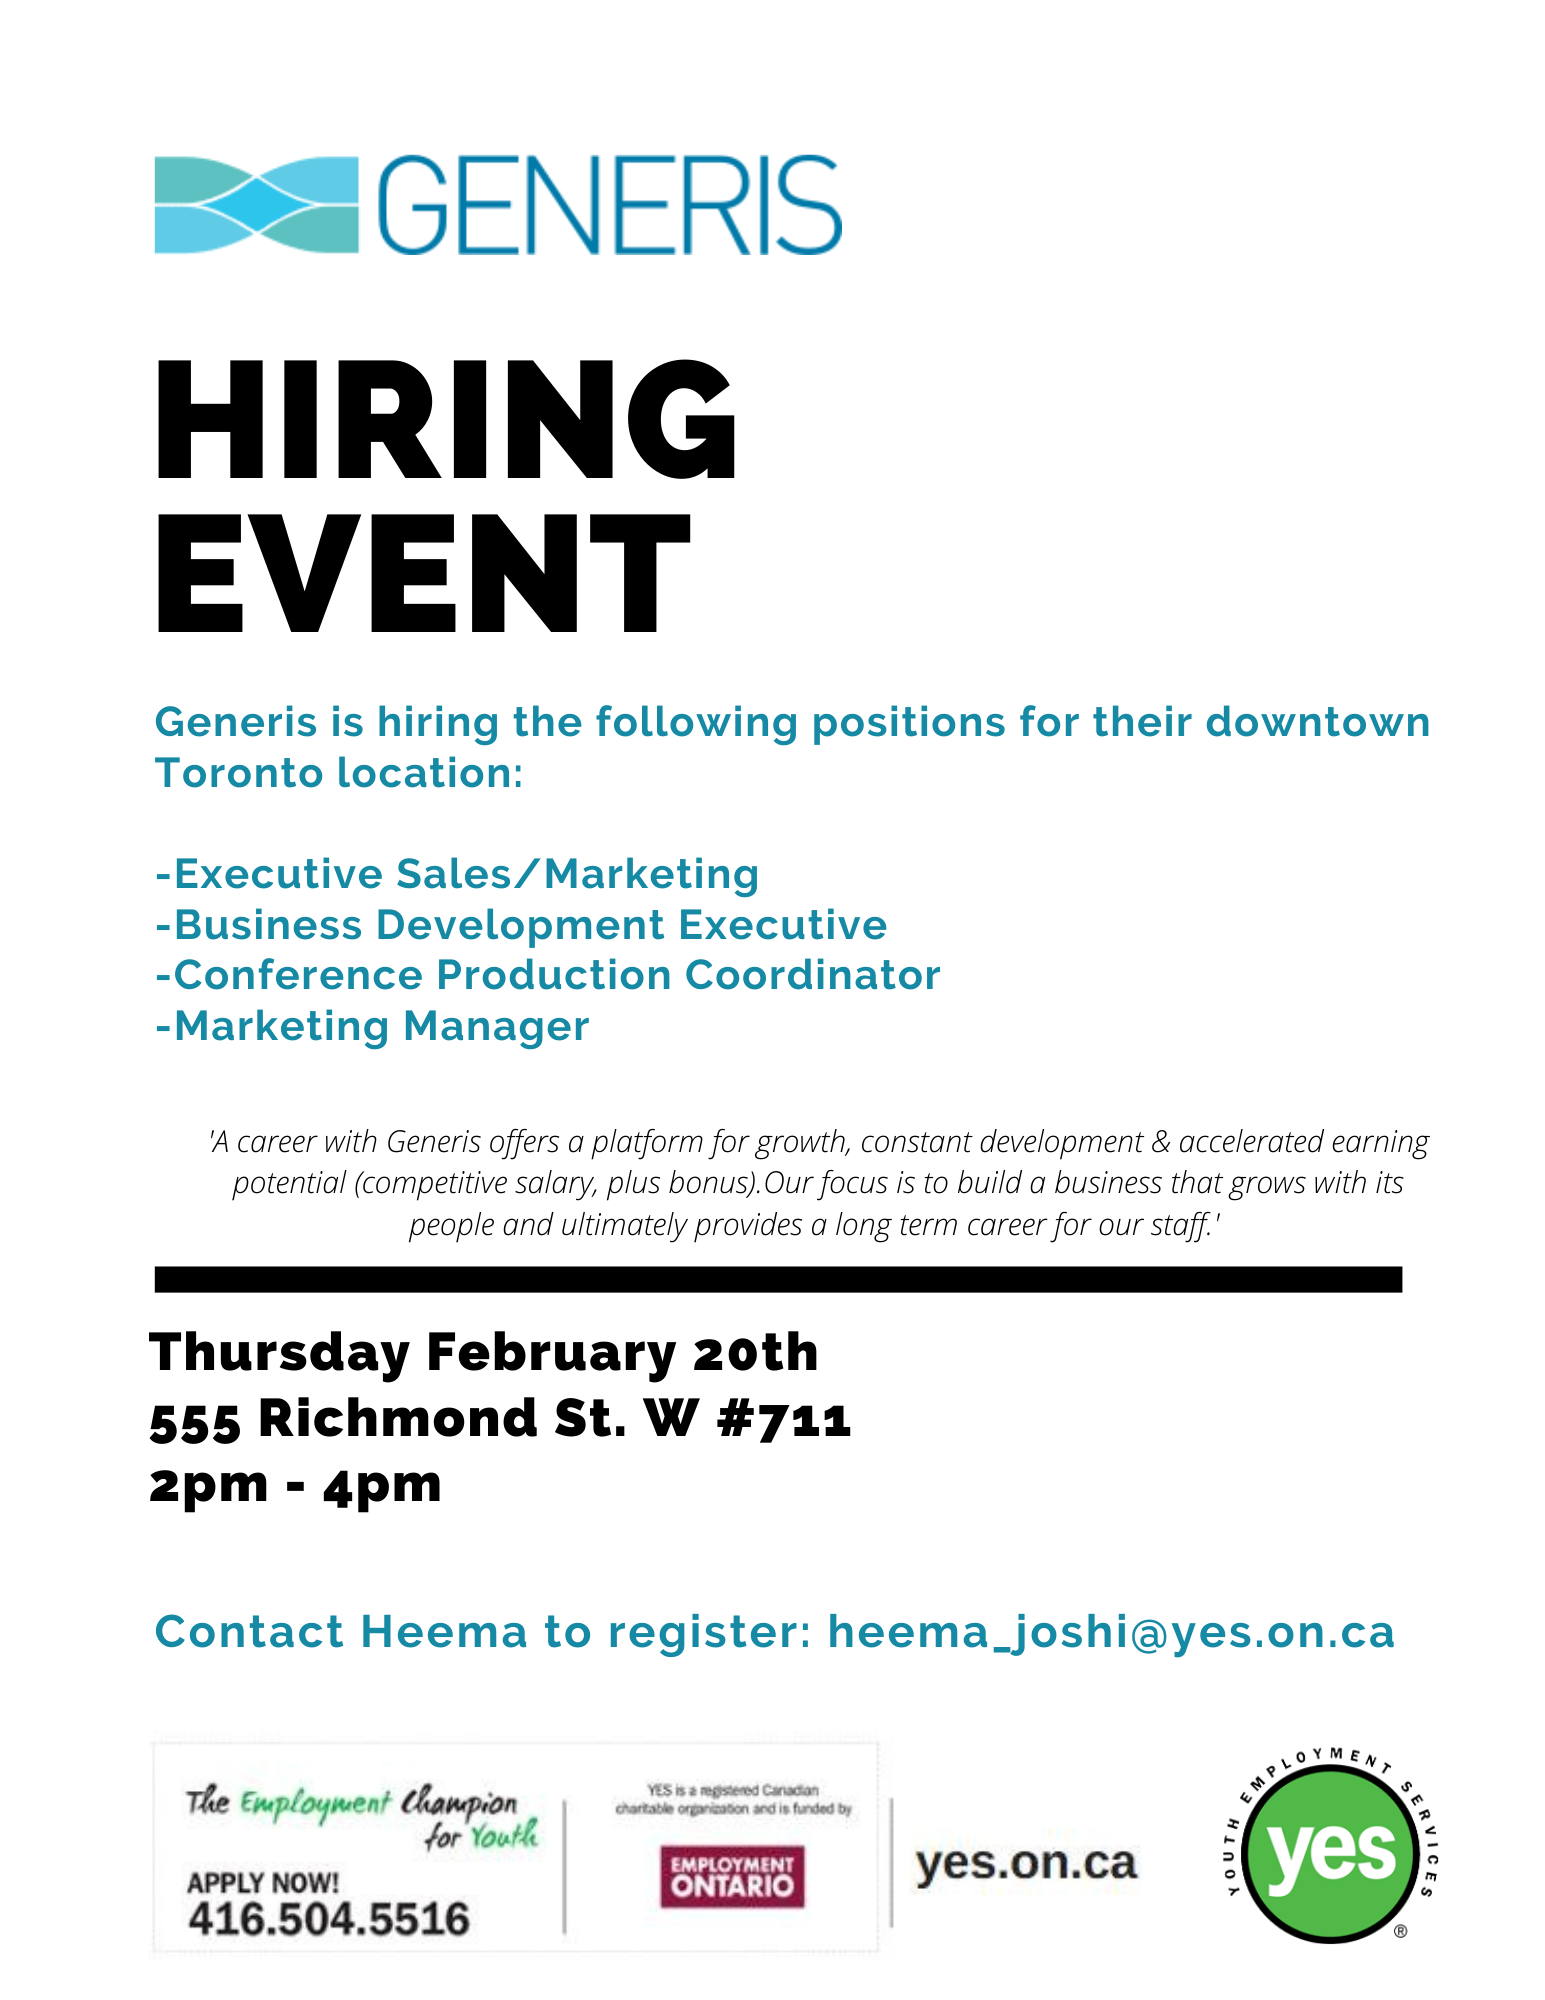 Generis Hiring Event @ Youth Employment Services